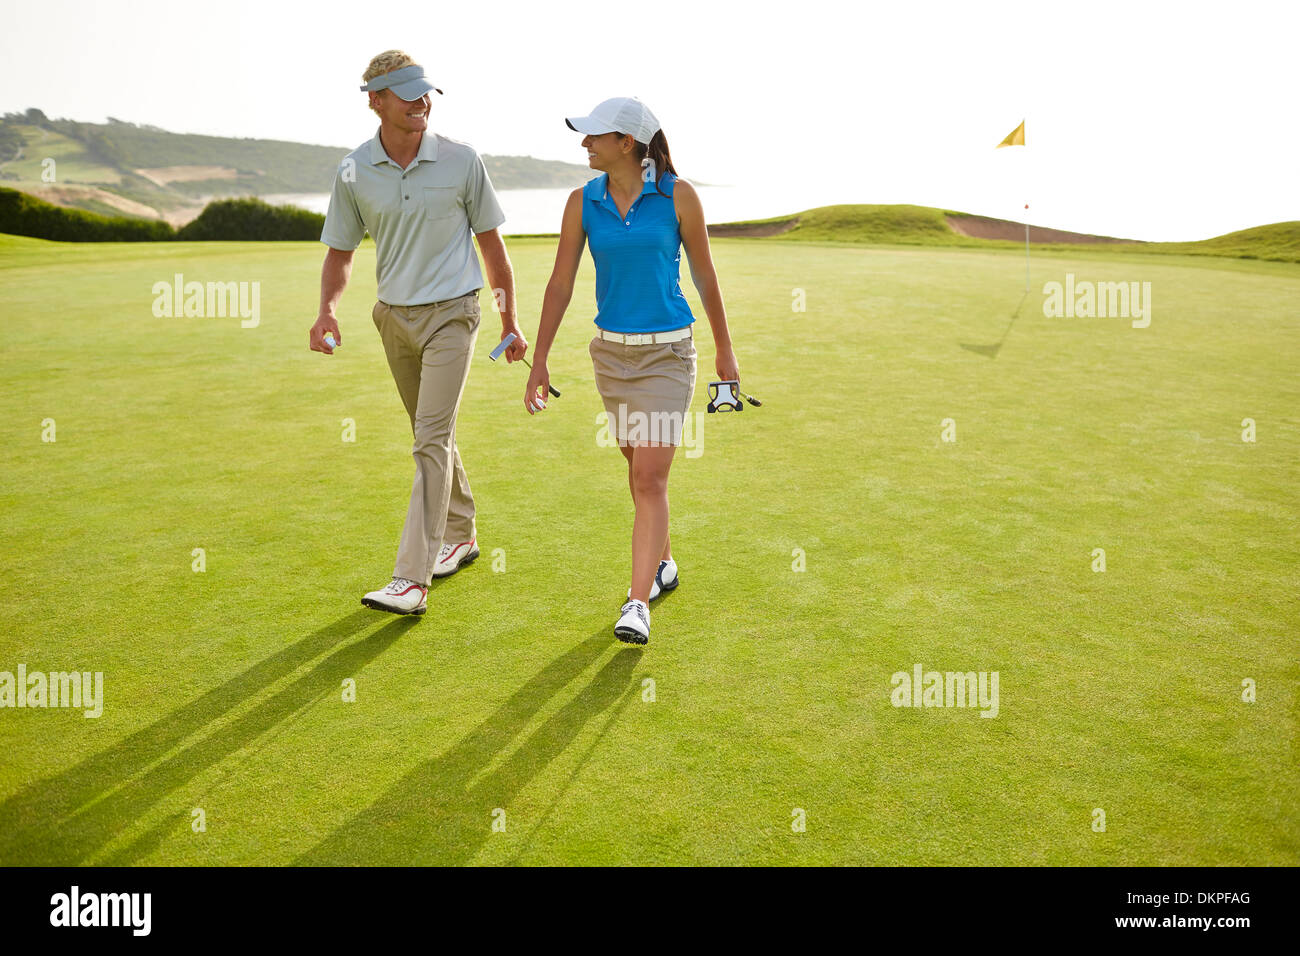 Couple walking on golf course - Stock Image